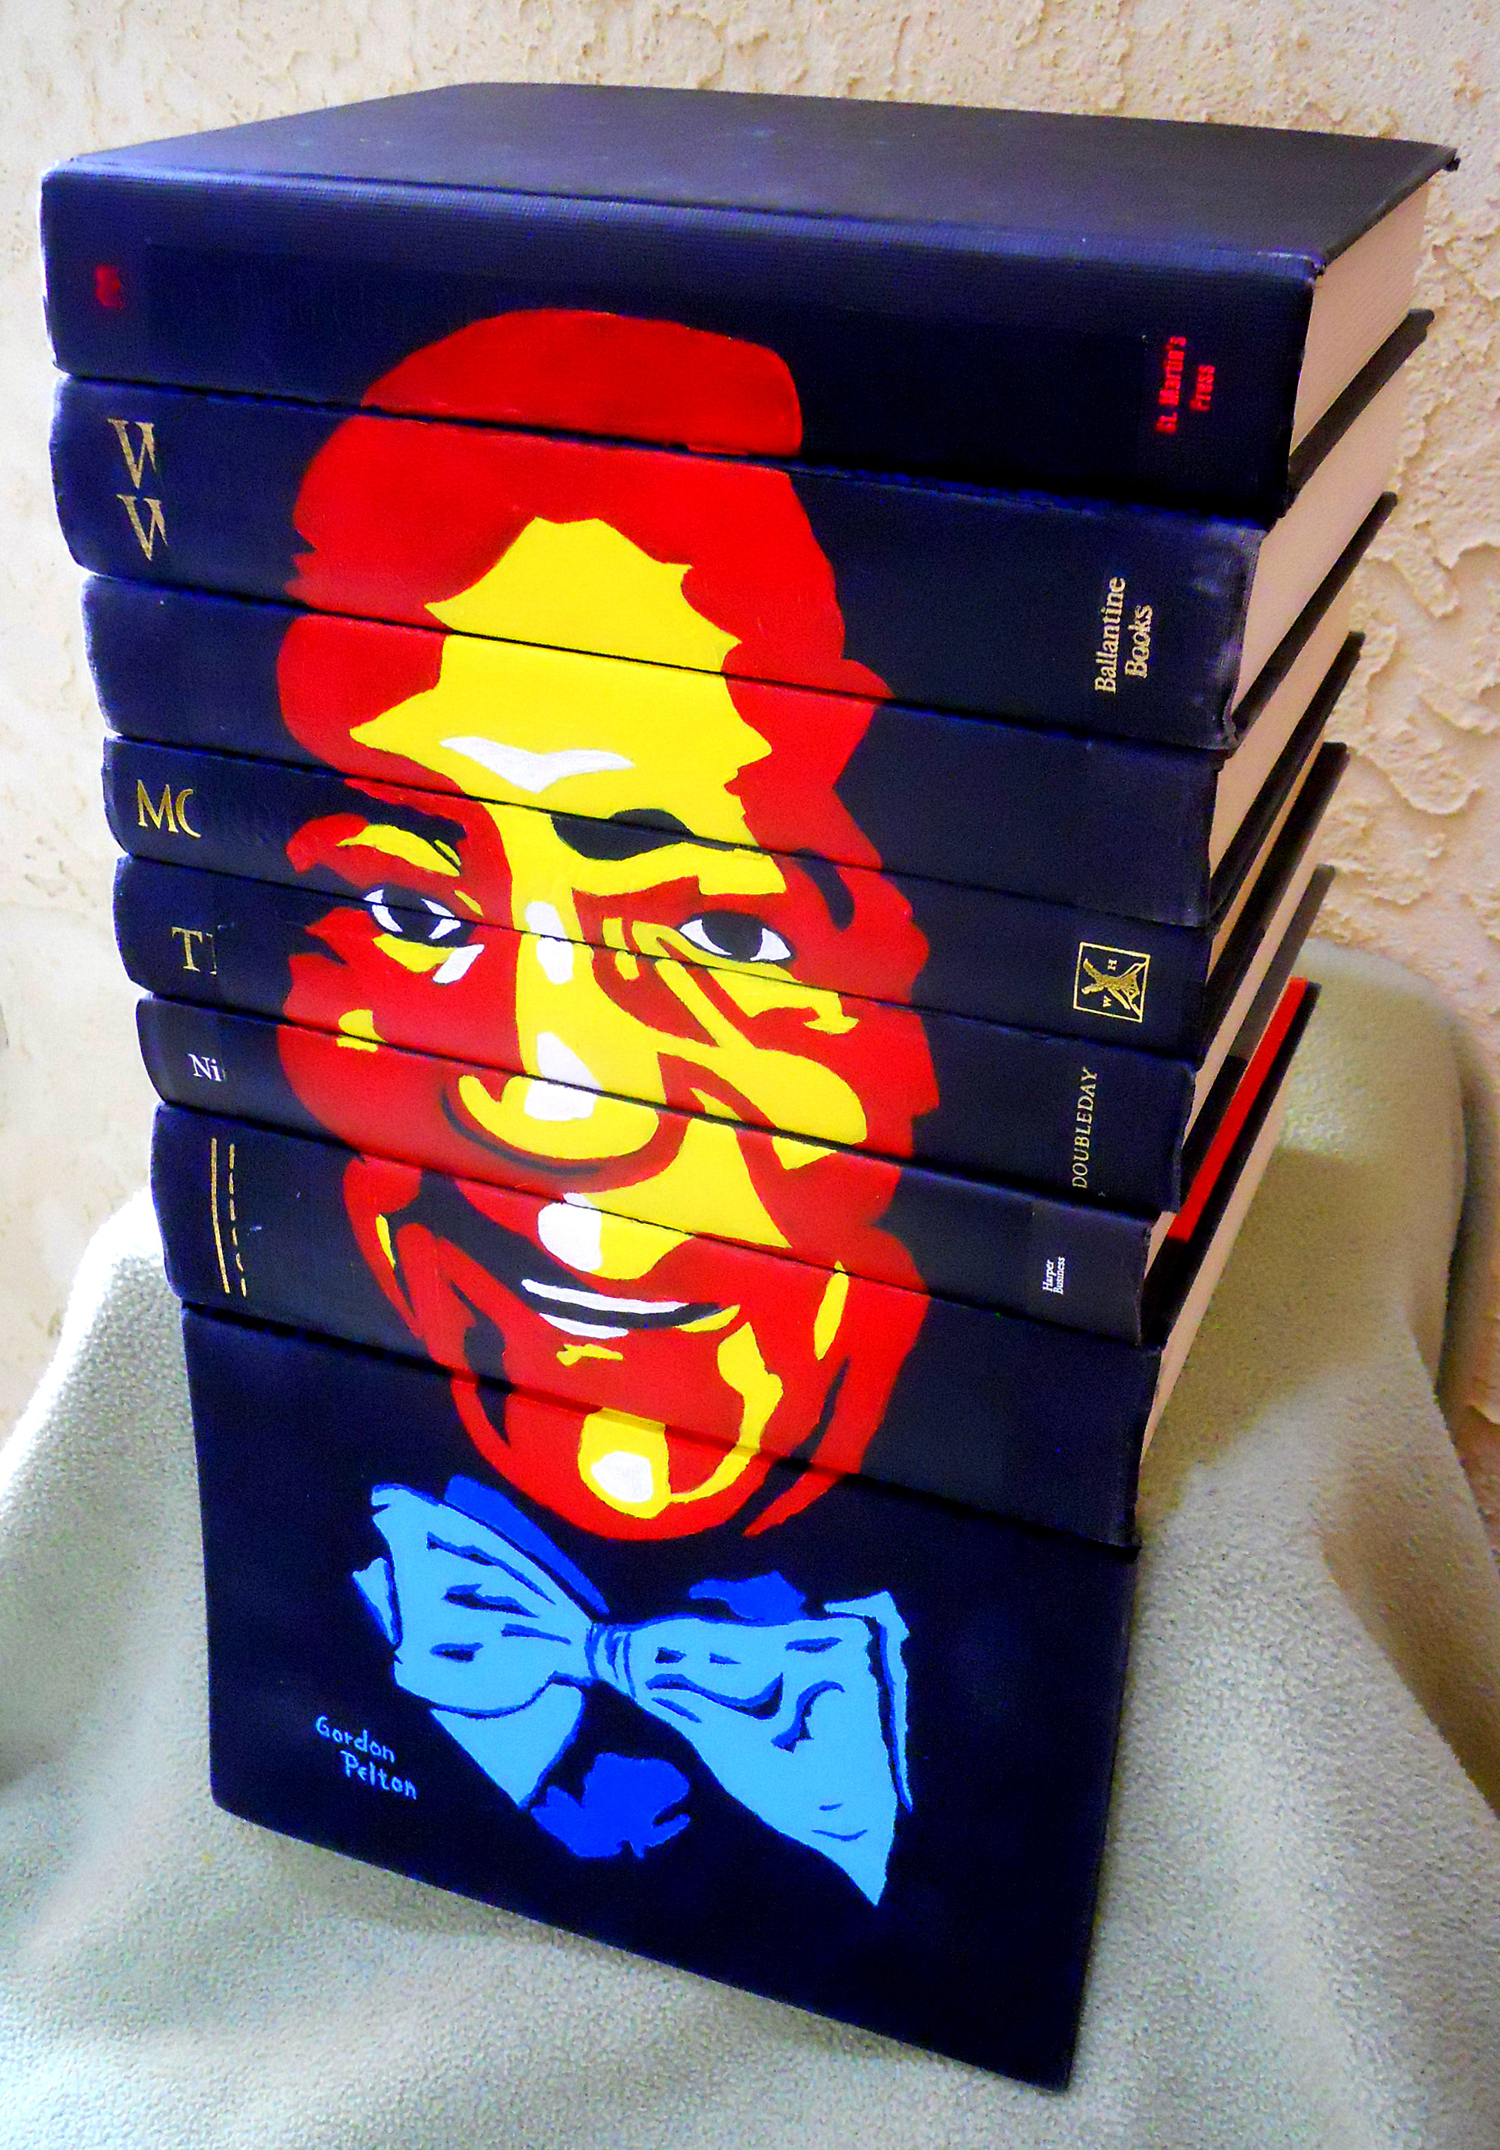 Cosby on Book Spines 3.JPG